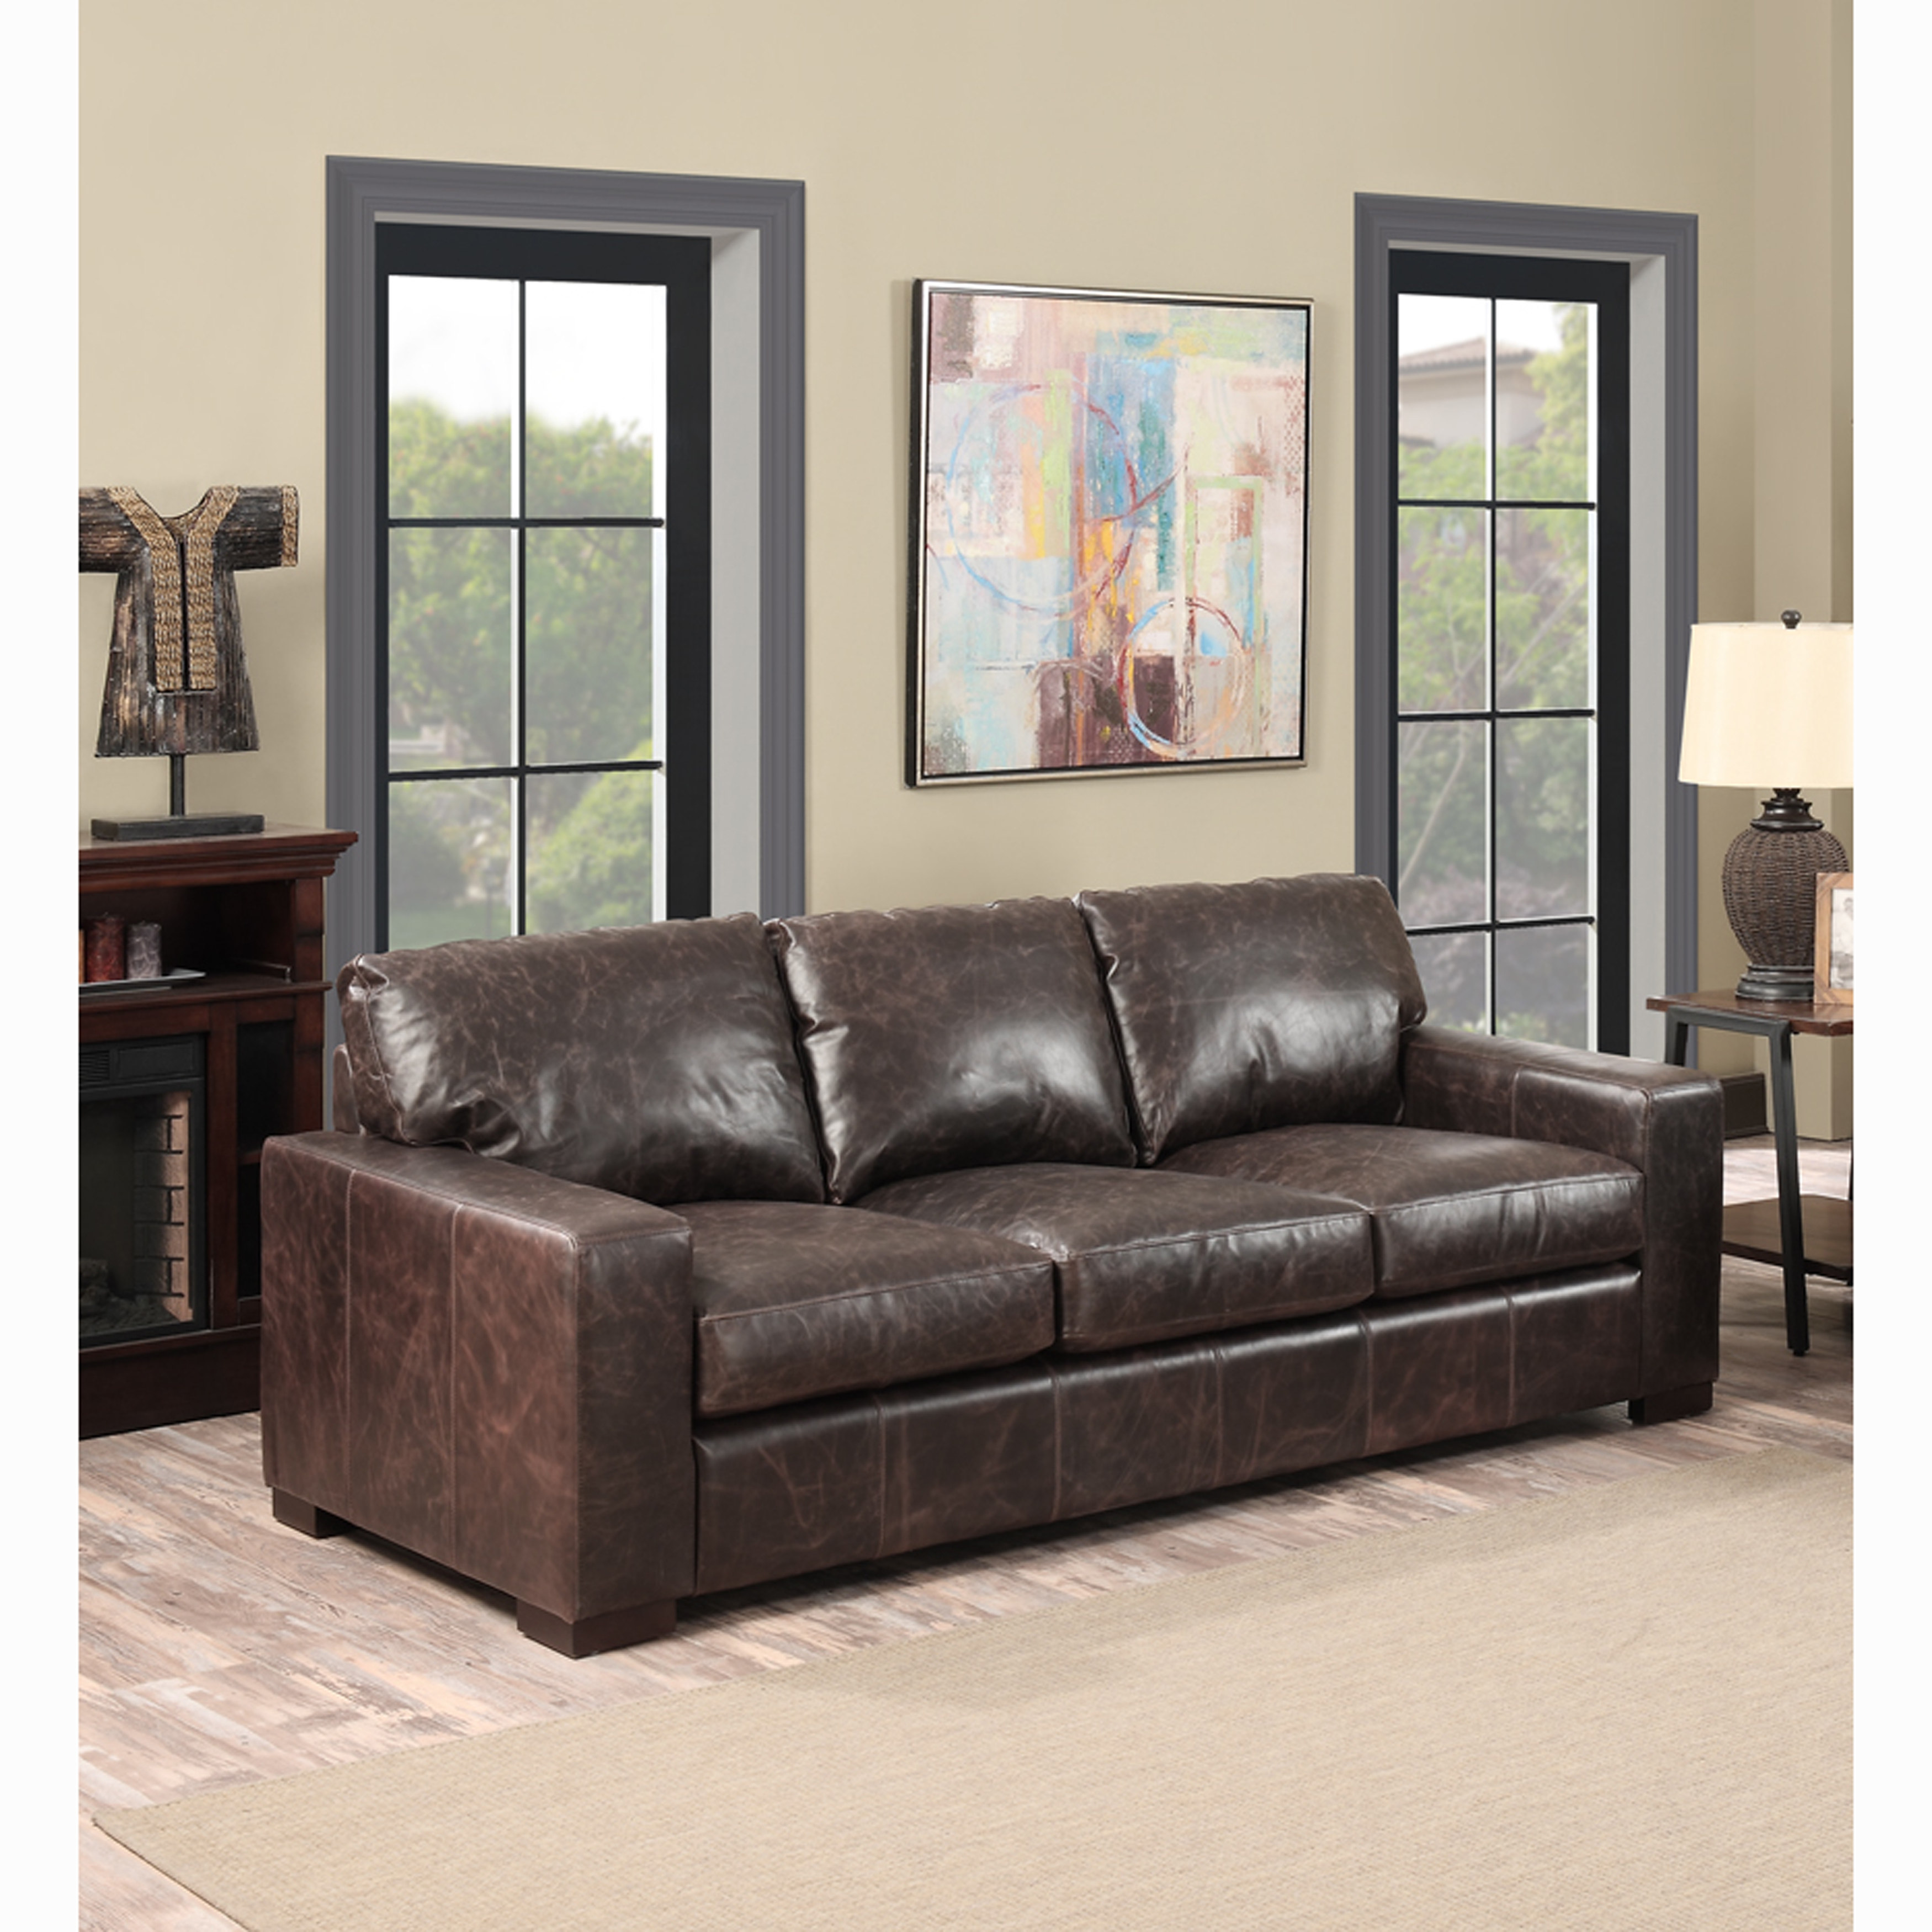 Sofaweb Com Maxweld Premium Distressed Brown Top Grain Leather Sofa Walmart Com